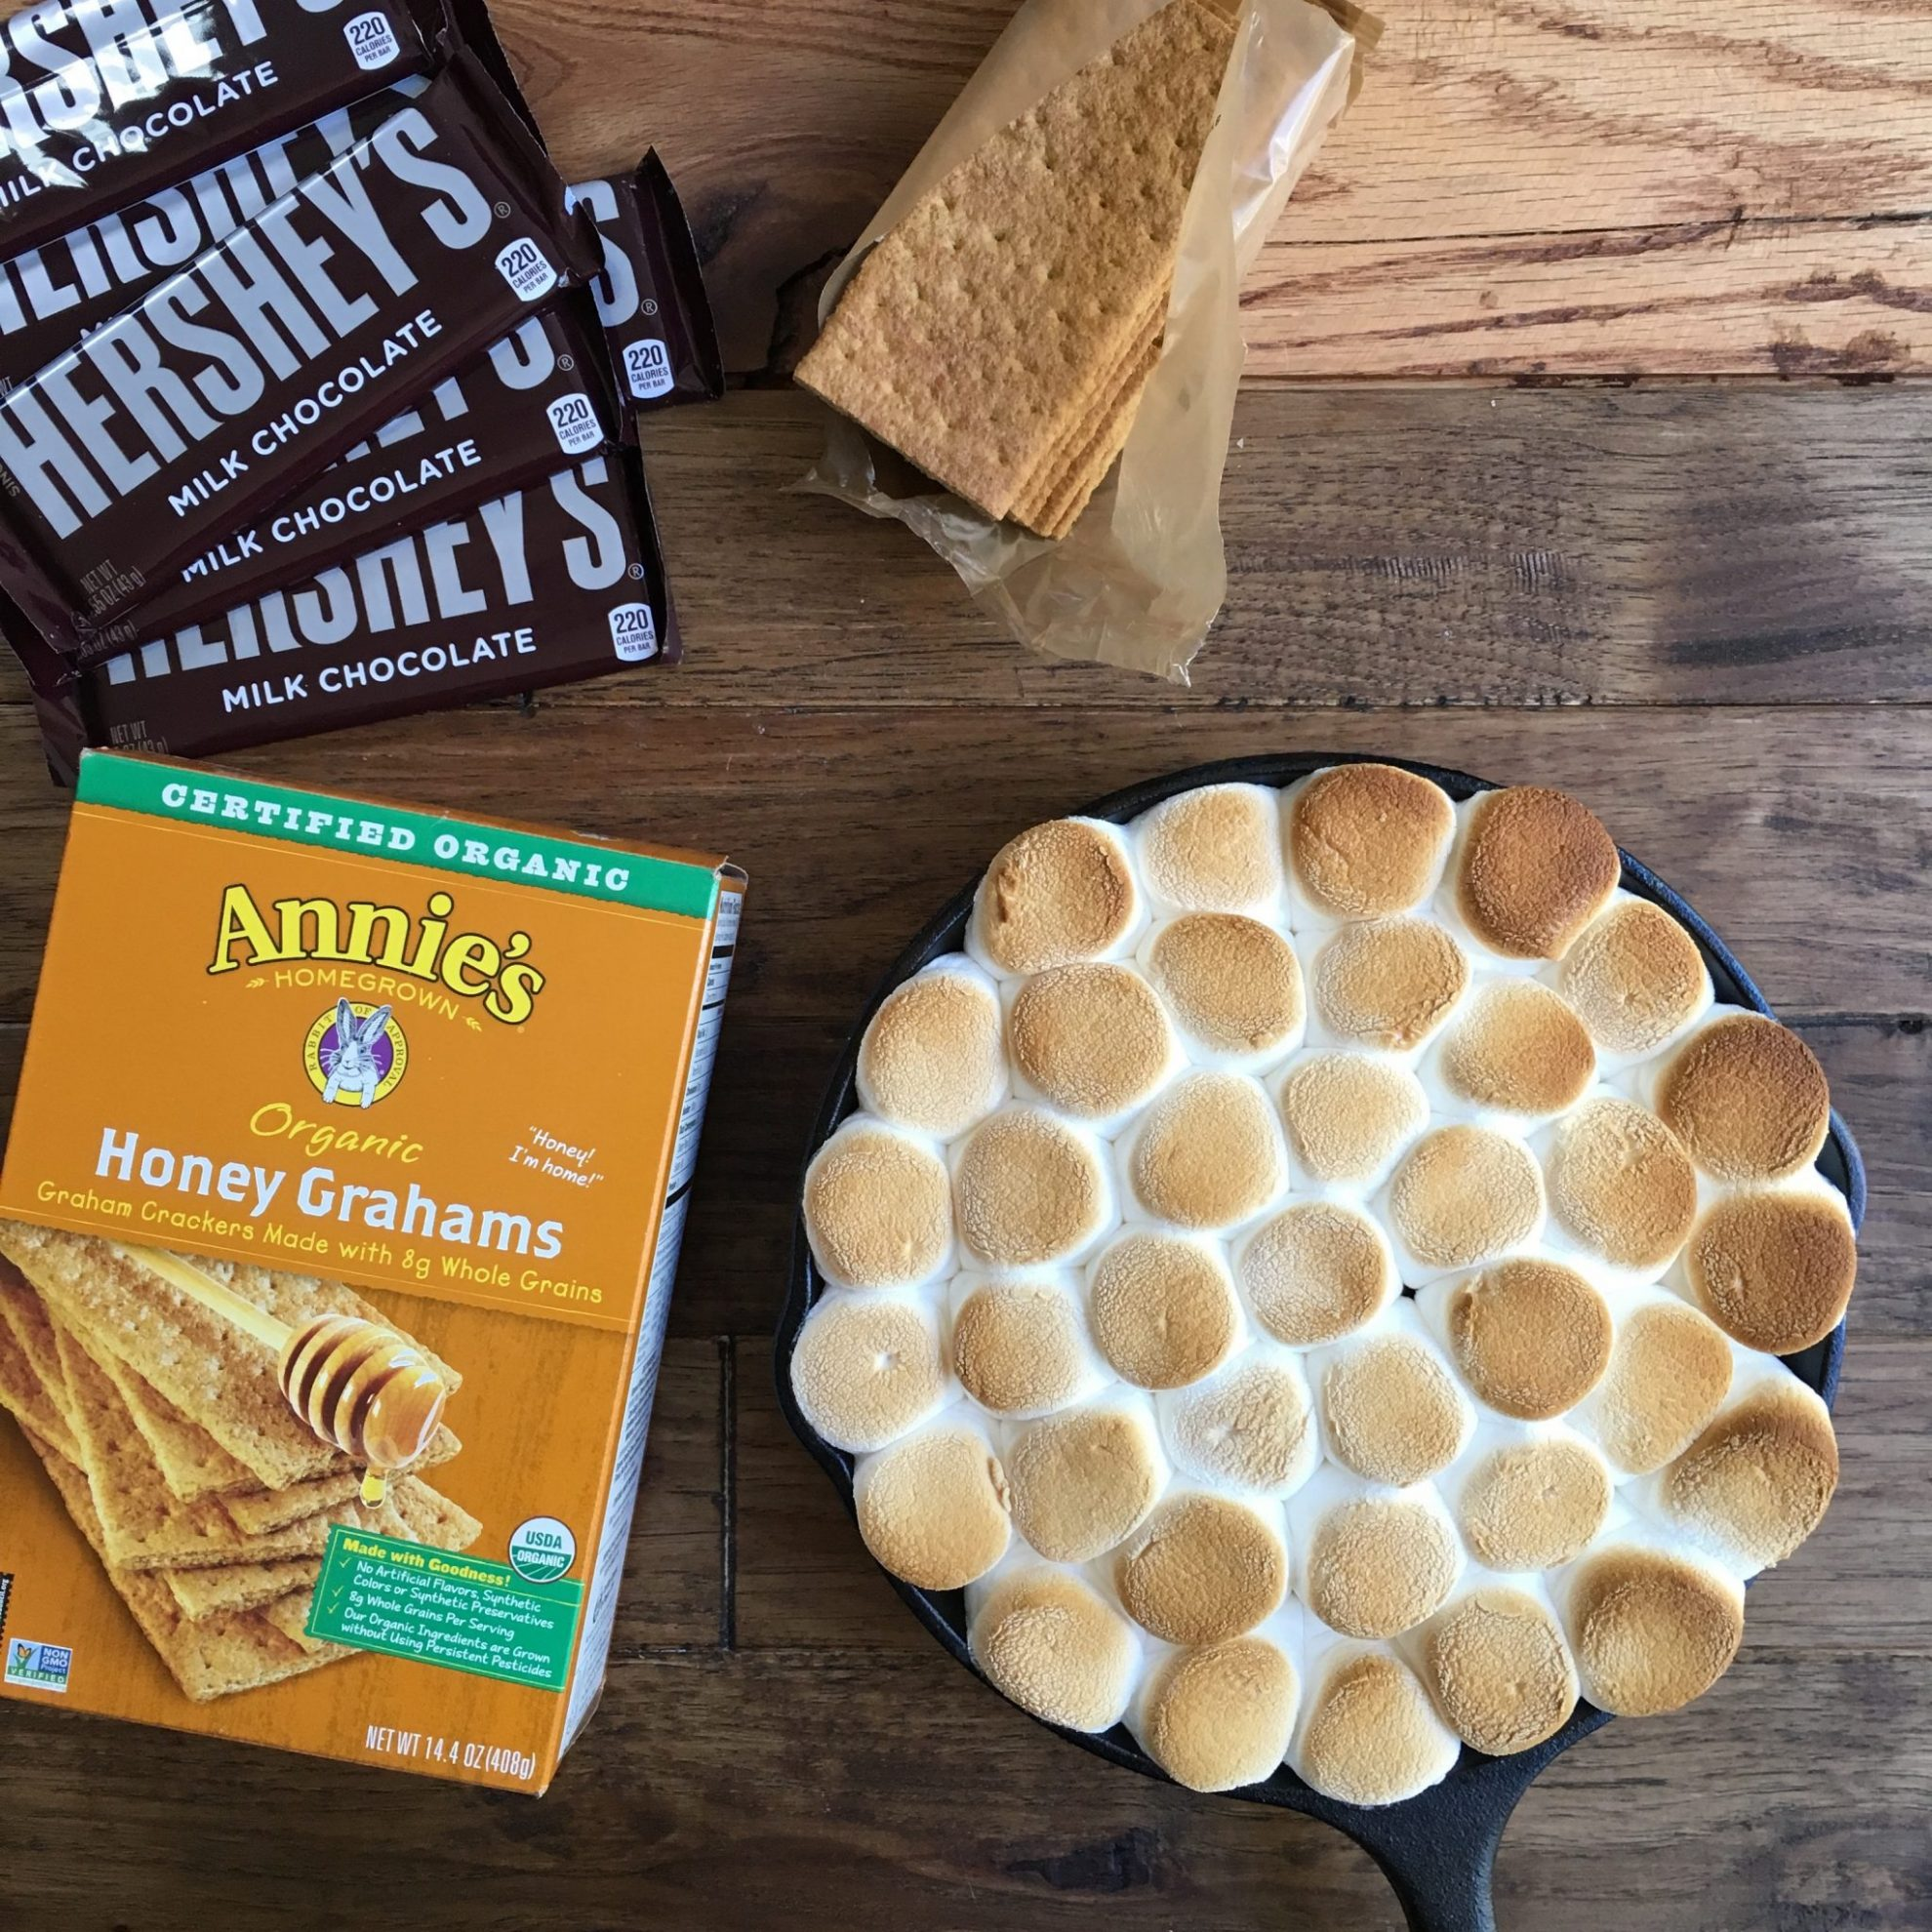 A skillet of easy s'mores dip next to a box of graham crackers, chocolate bars, and an open sleeve of graham crackers.